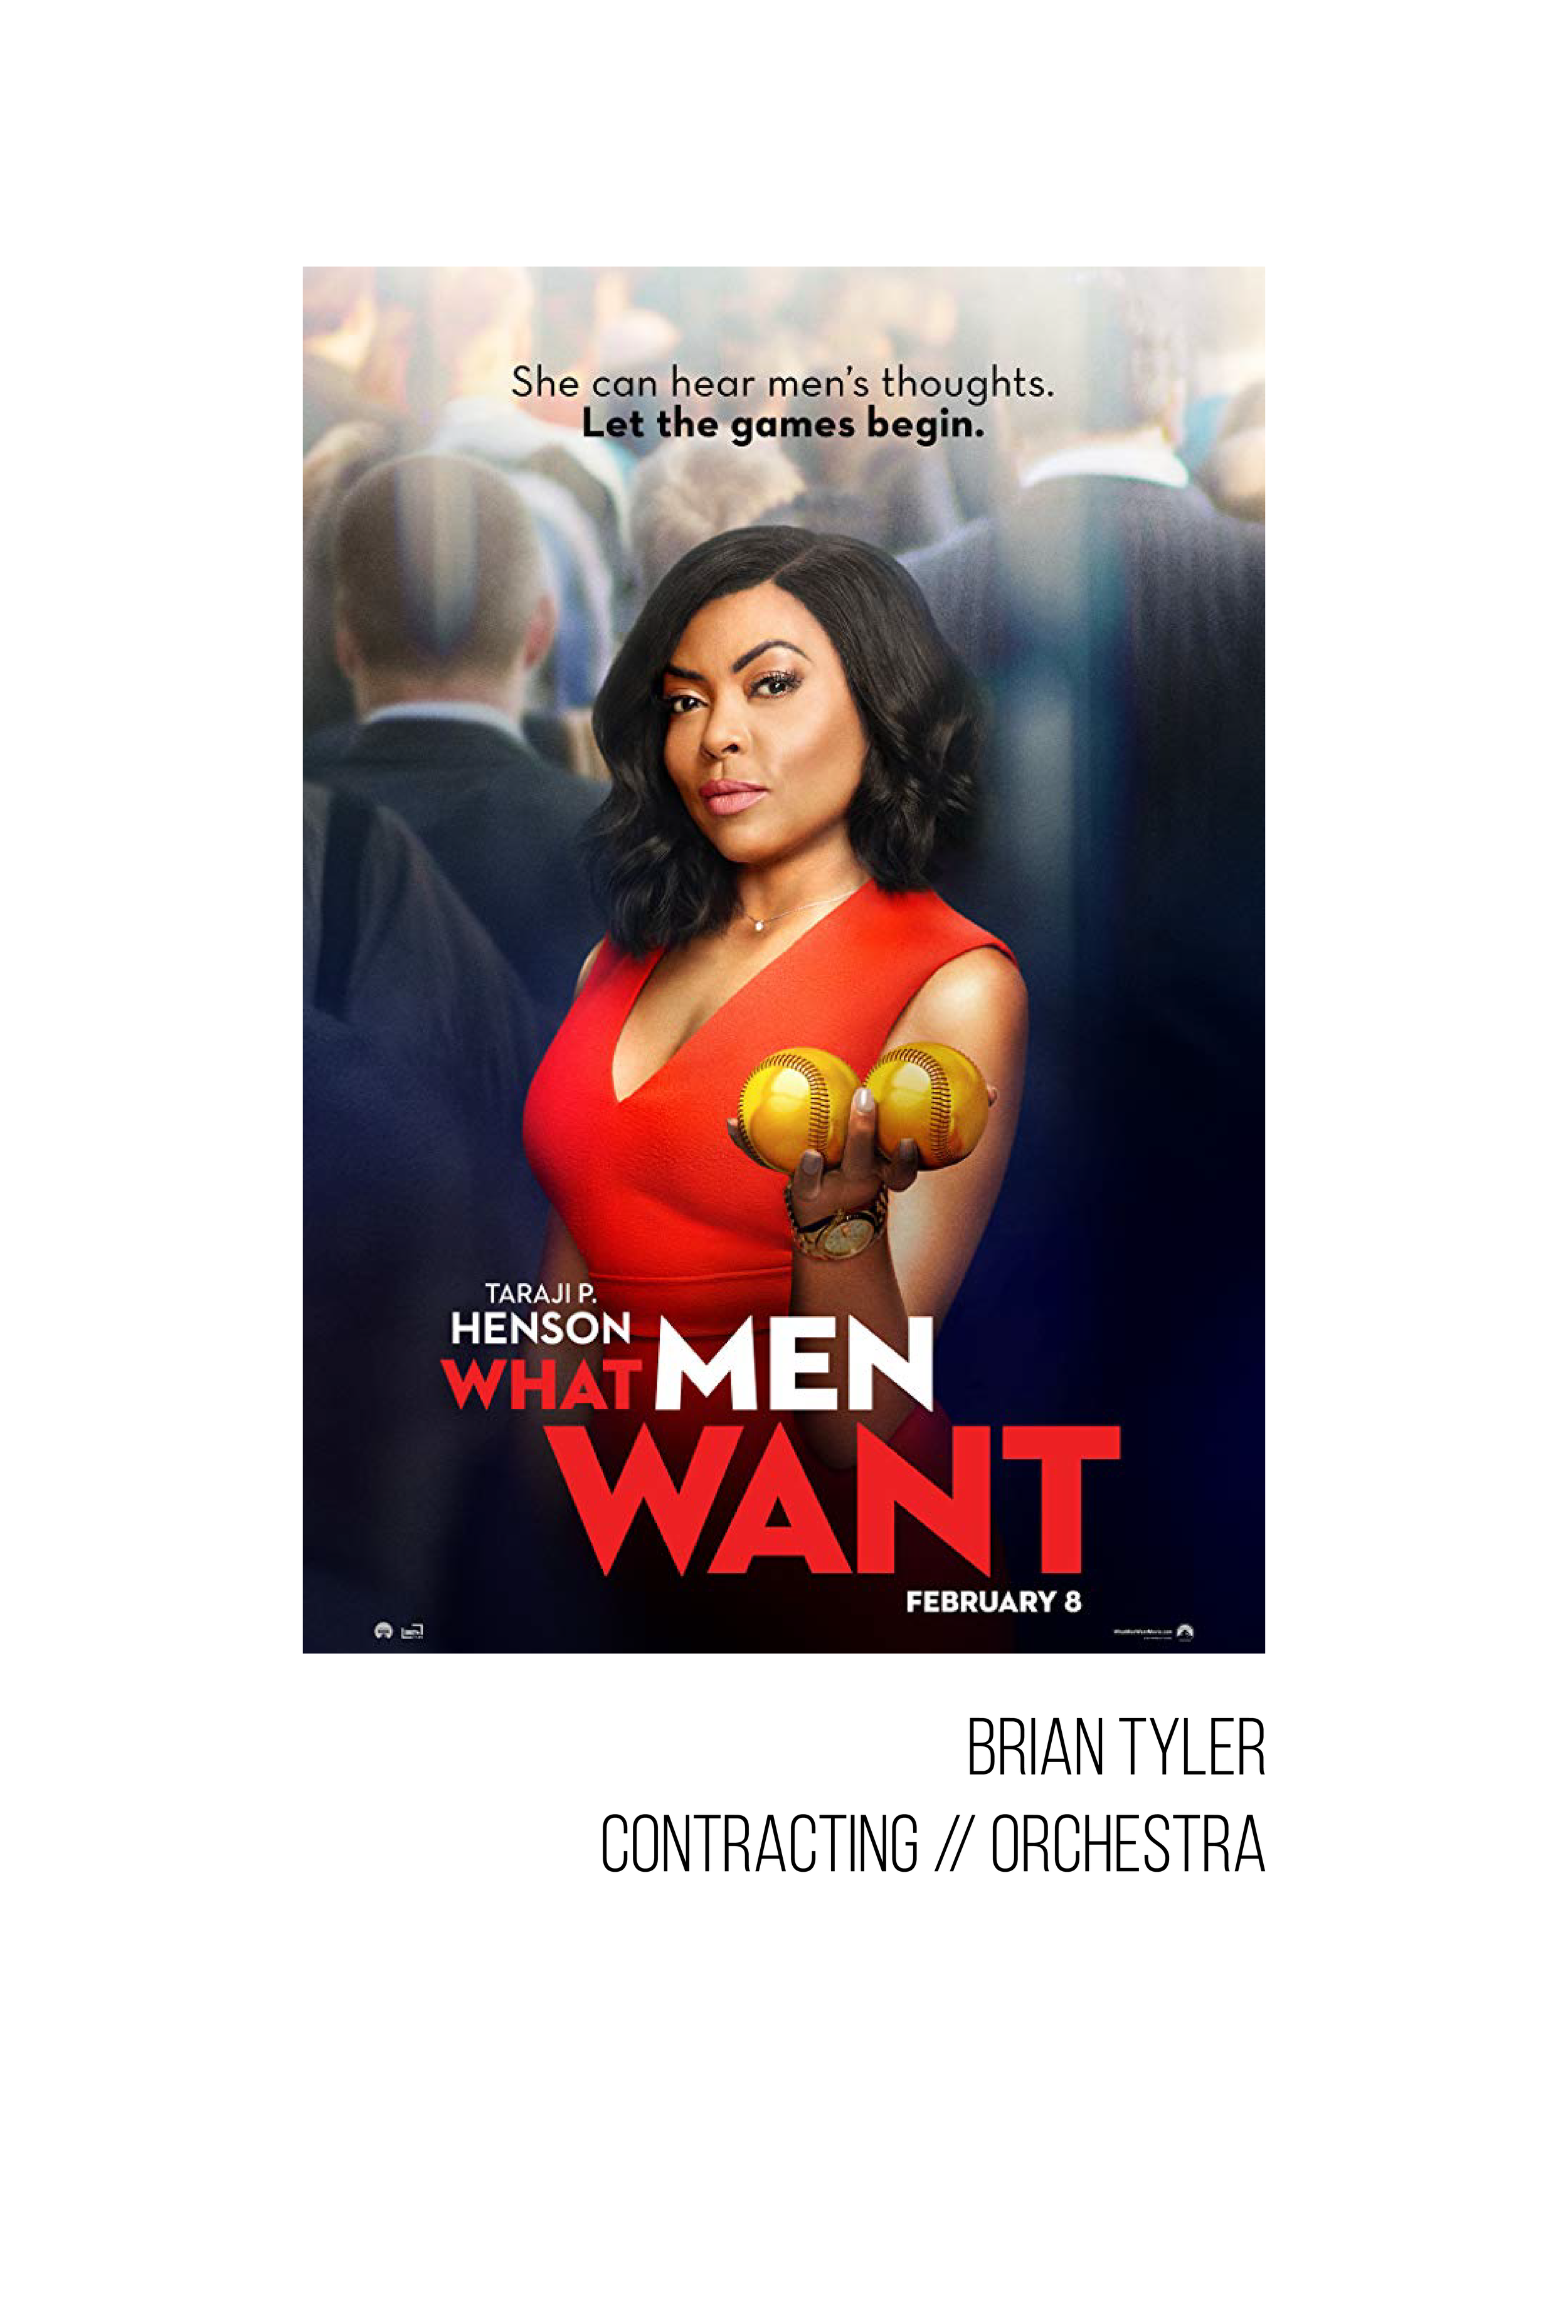 whatmenwant-01.png